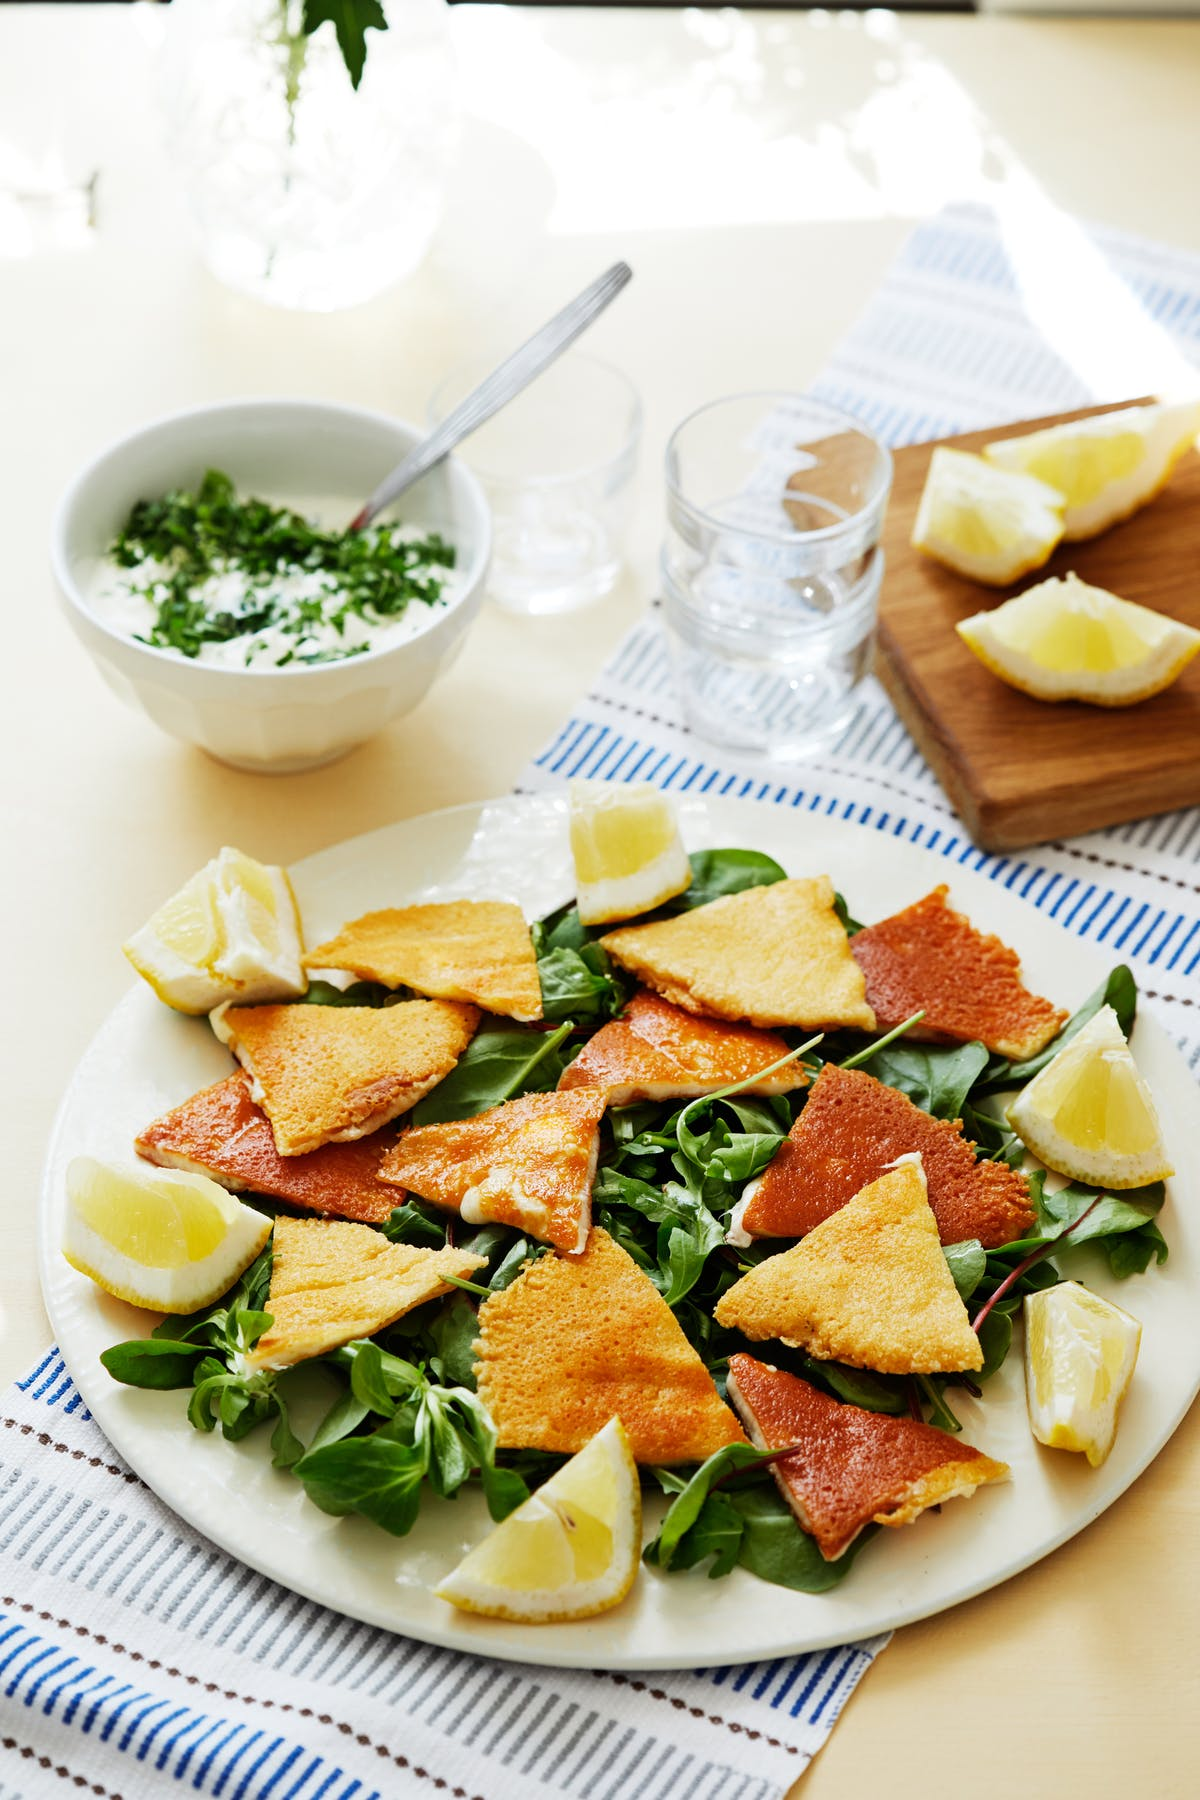 Saganaki salad with mint dip